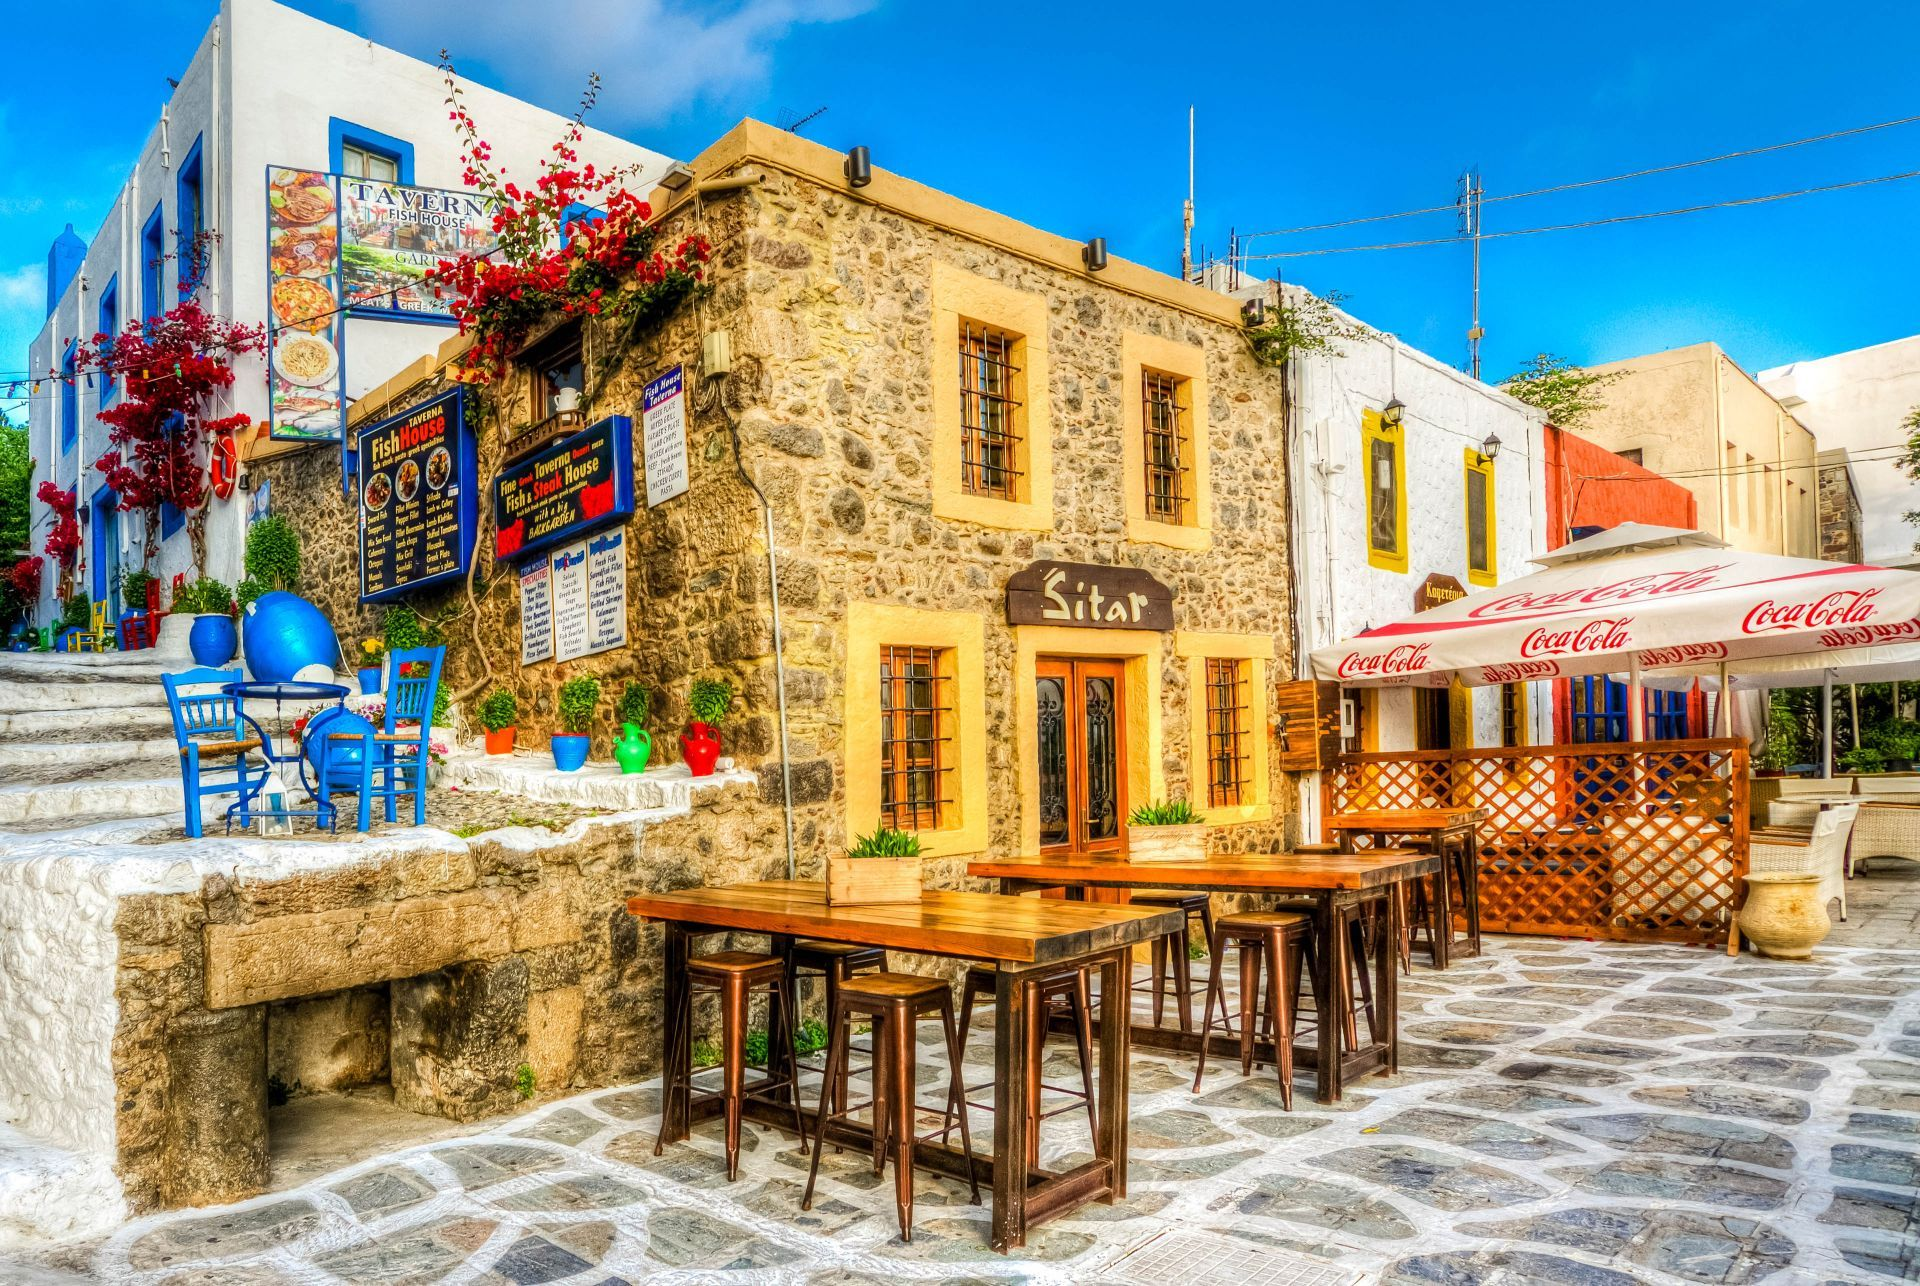 Cafes in Kos